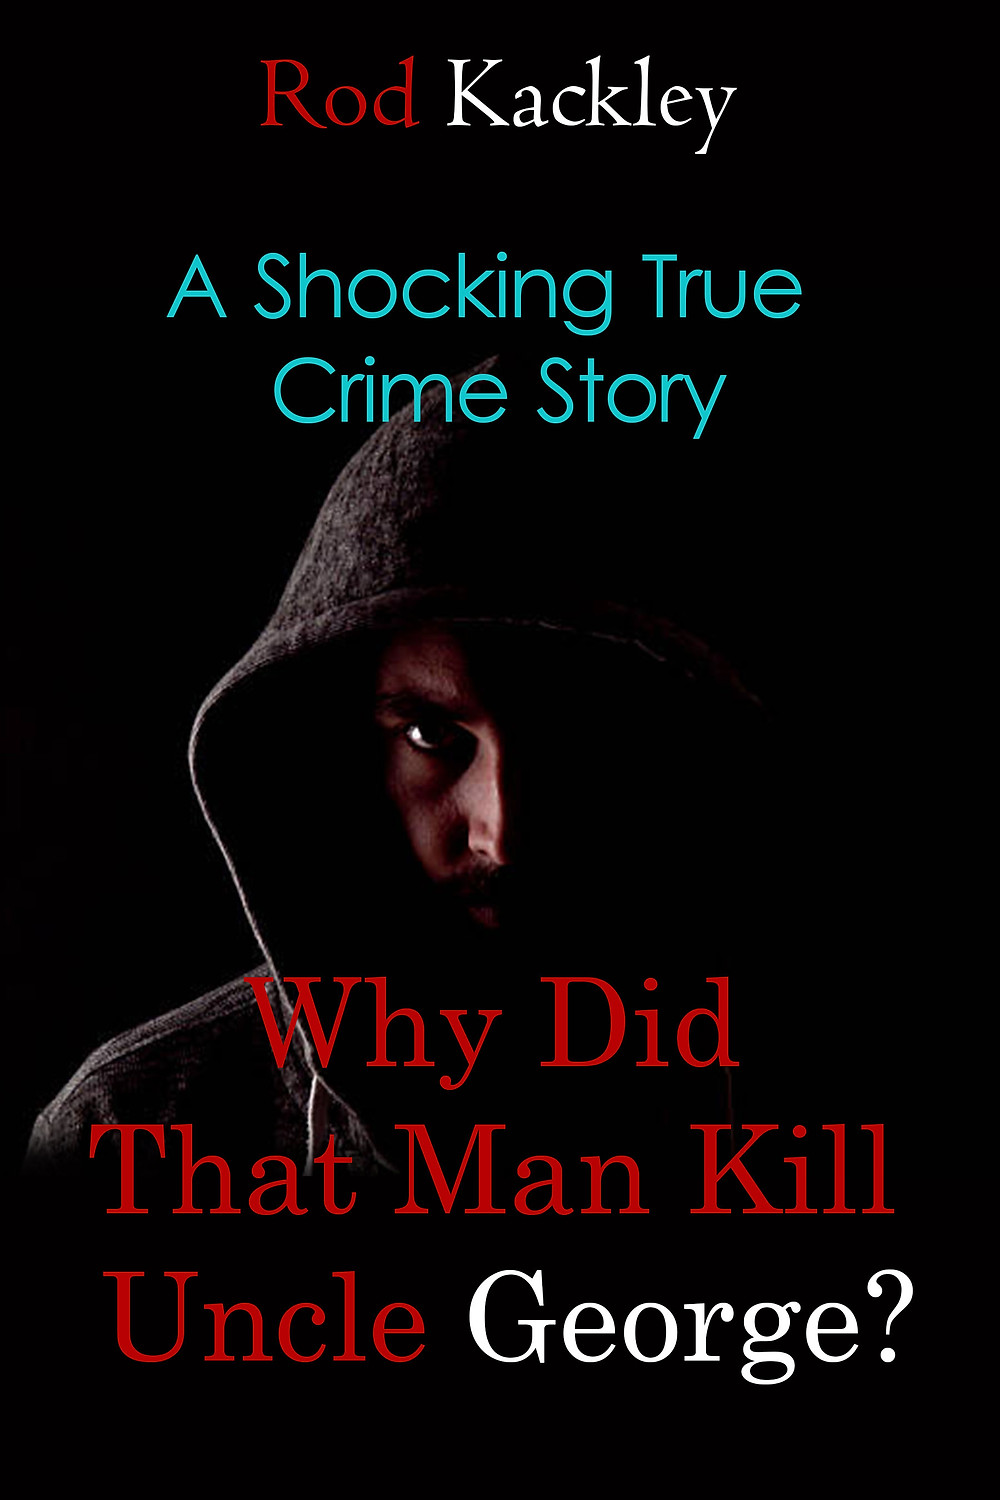 Why Did That Man Kill Uncle George: A Shocking True Crime Story